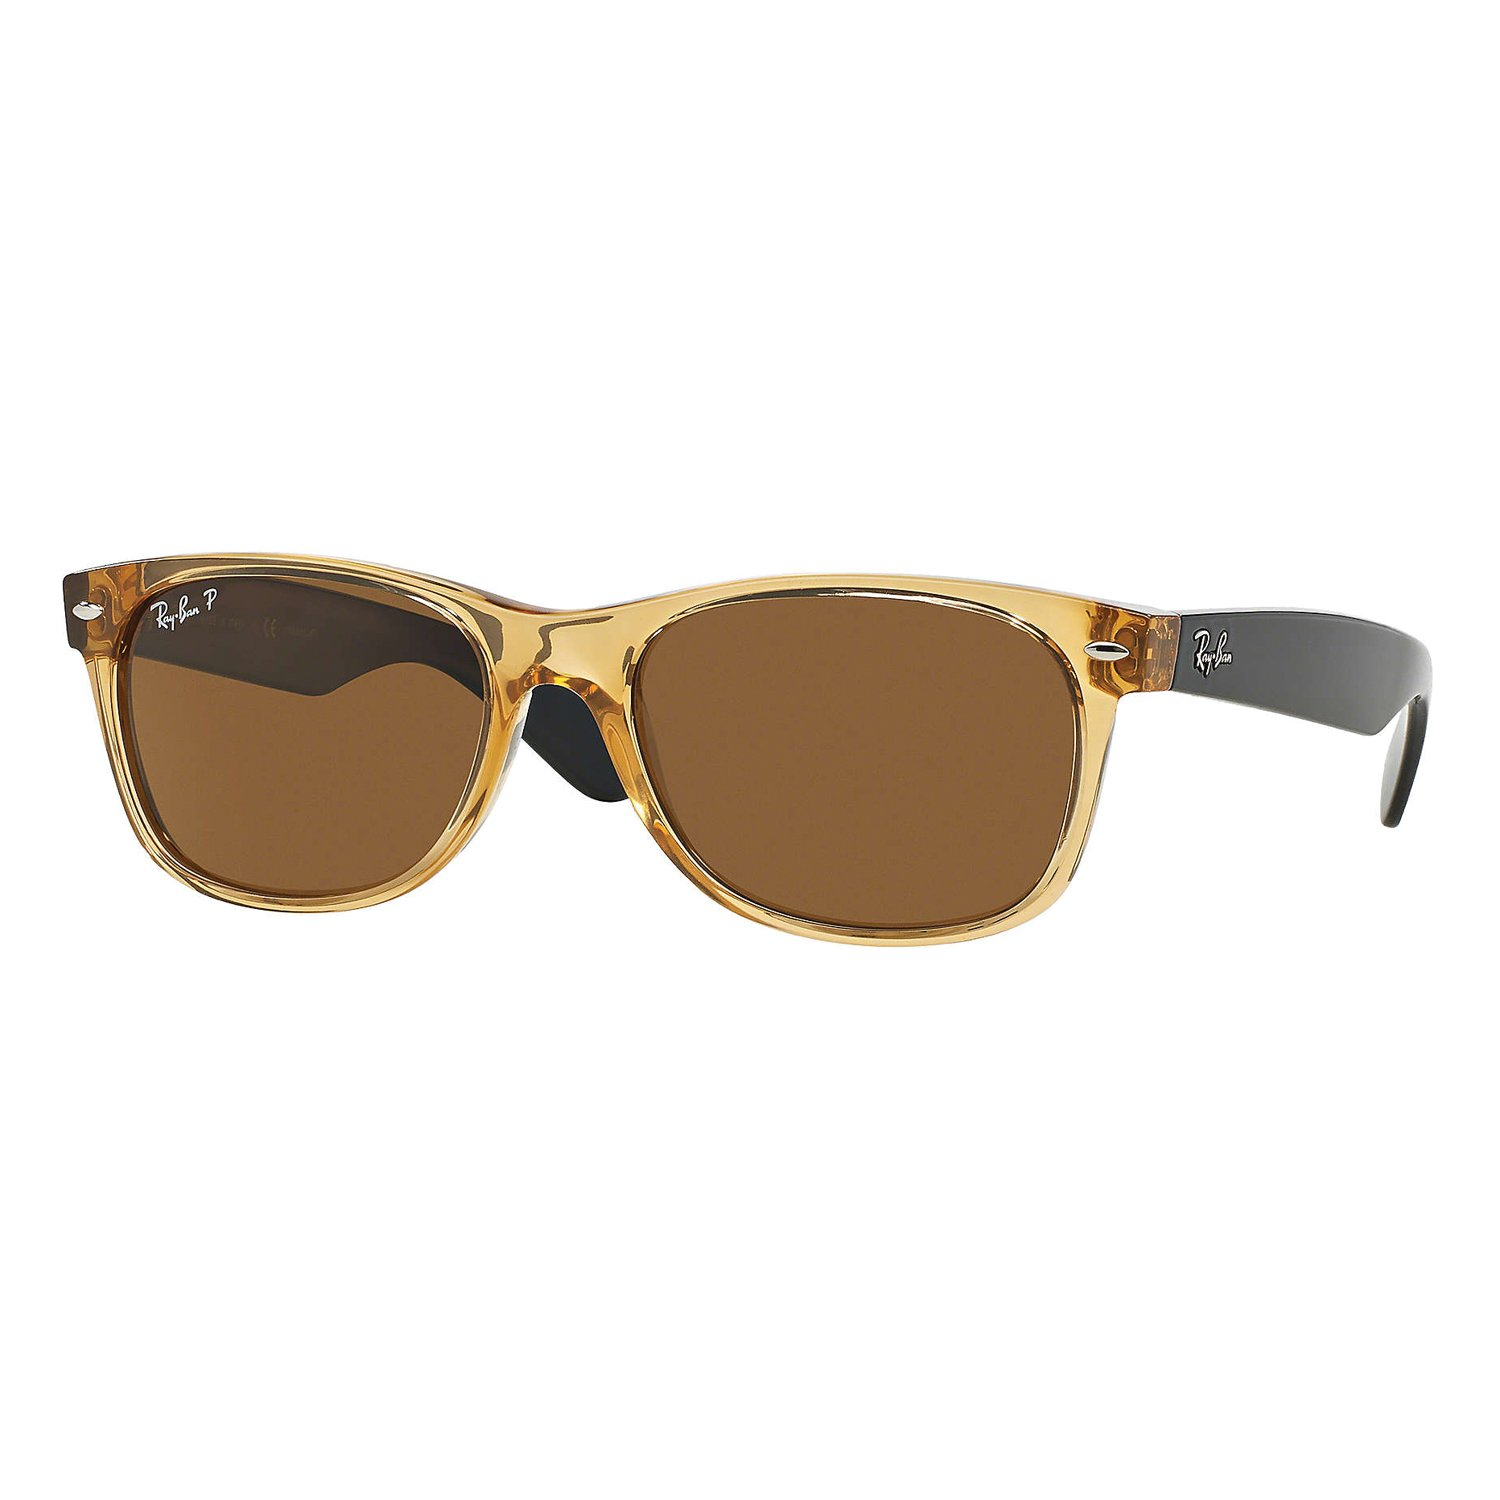 Ray-Ban RB 2132 945/57 55mm New Wayfarer Honey W/ Crystal Brown Polarized Lens by Ray-Ban